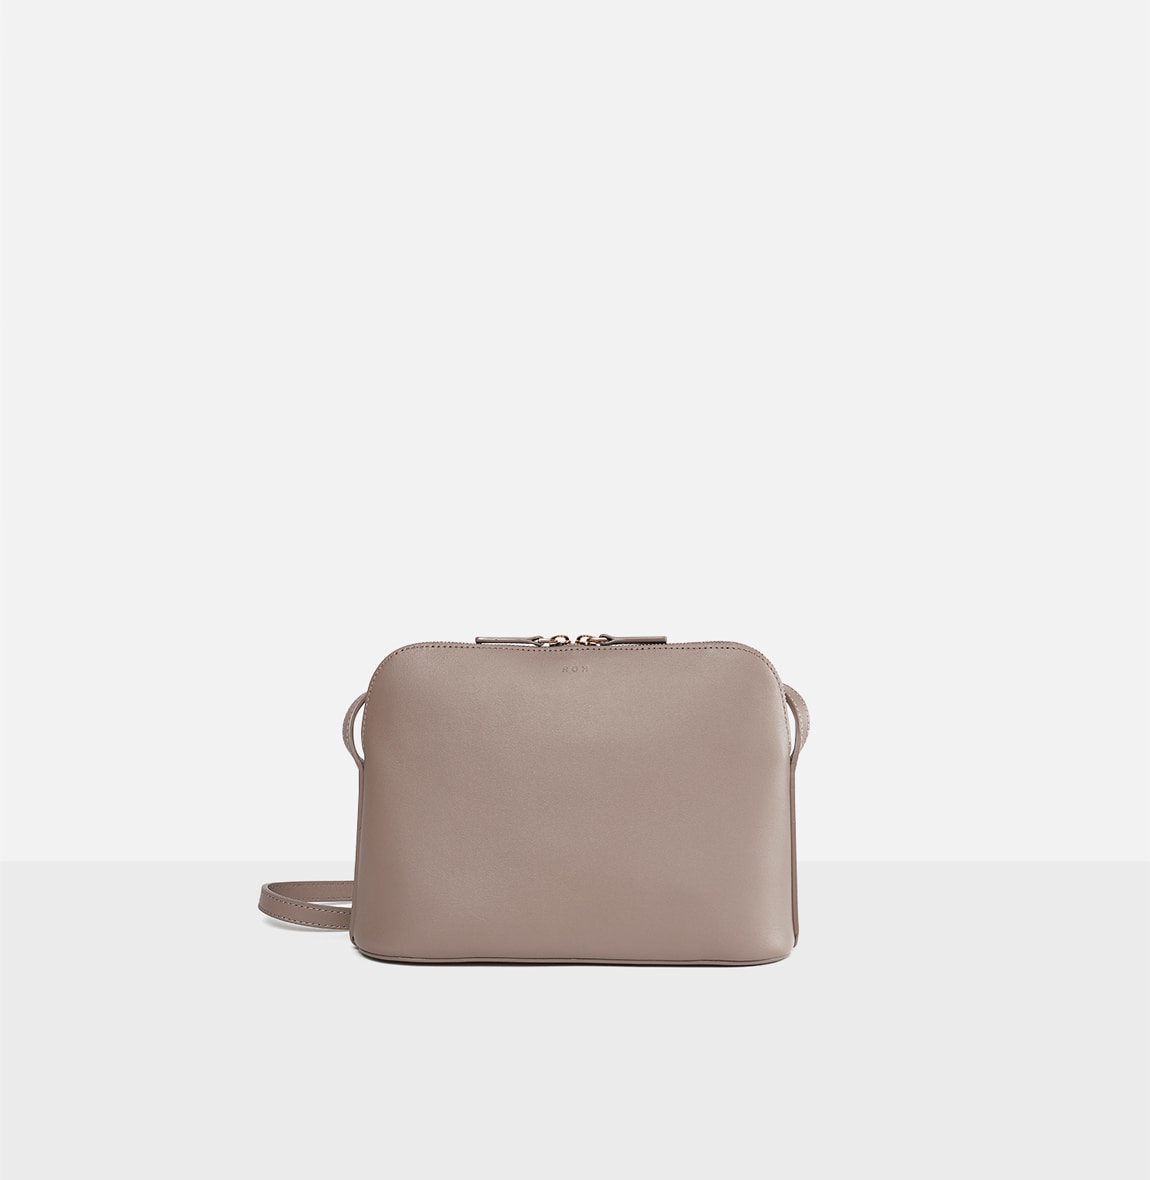 ROH Around-flat crossbody bag Beige